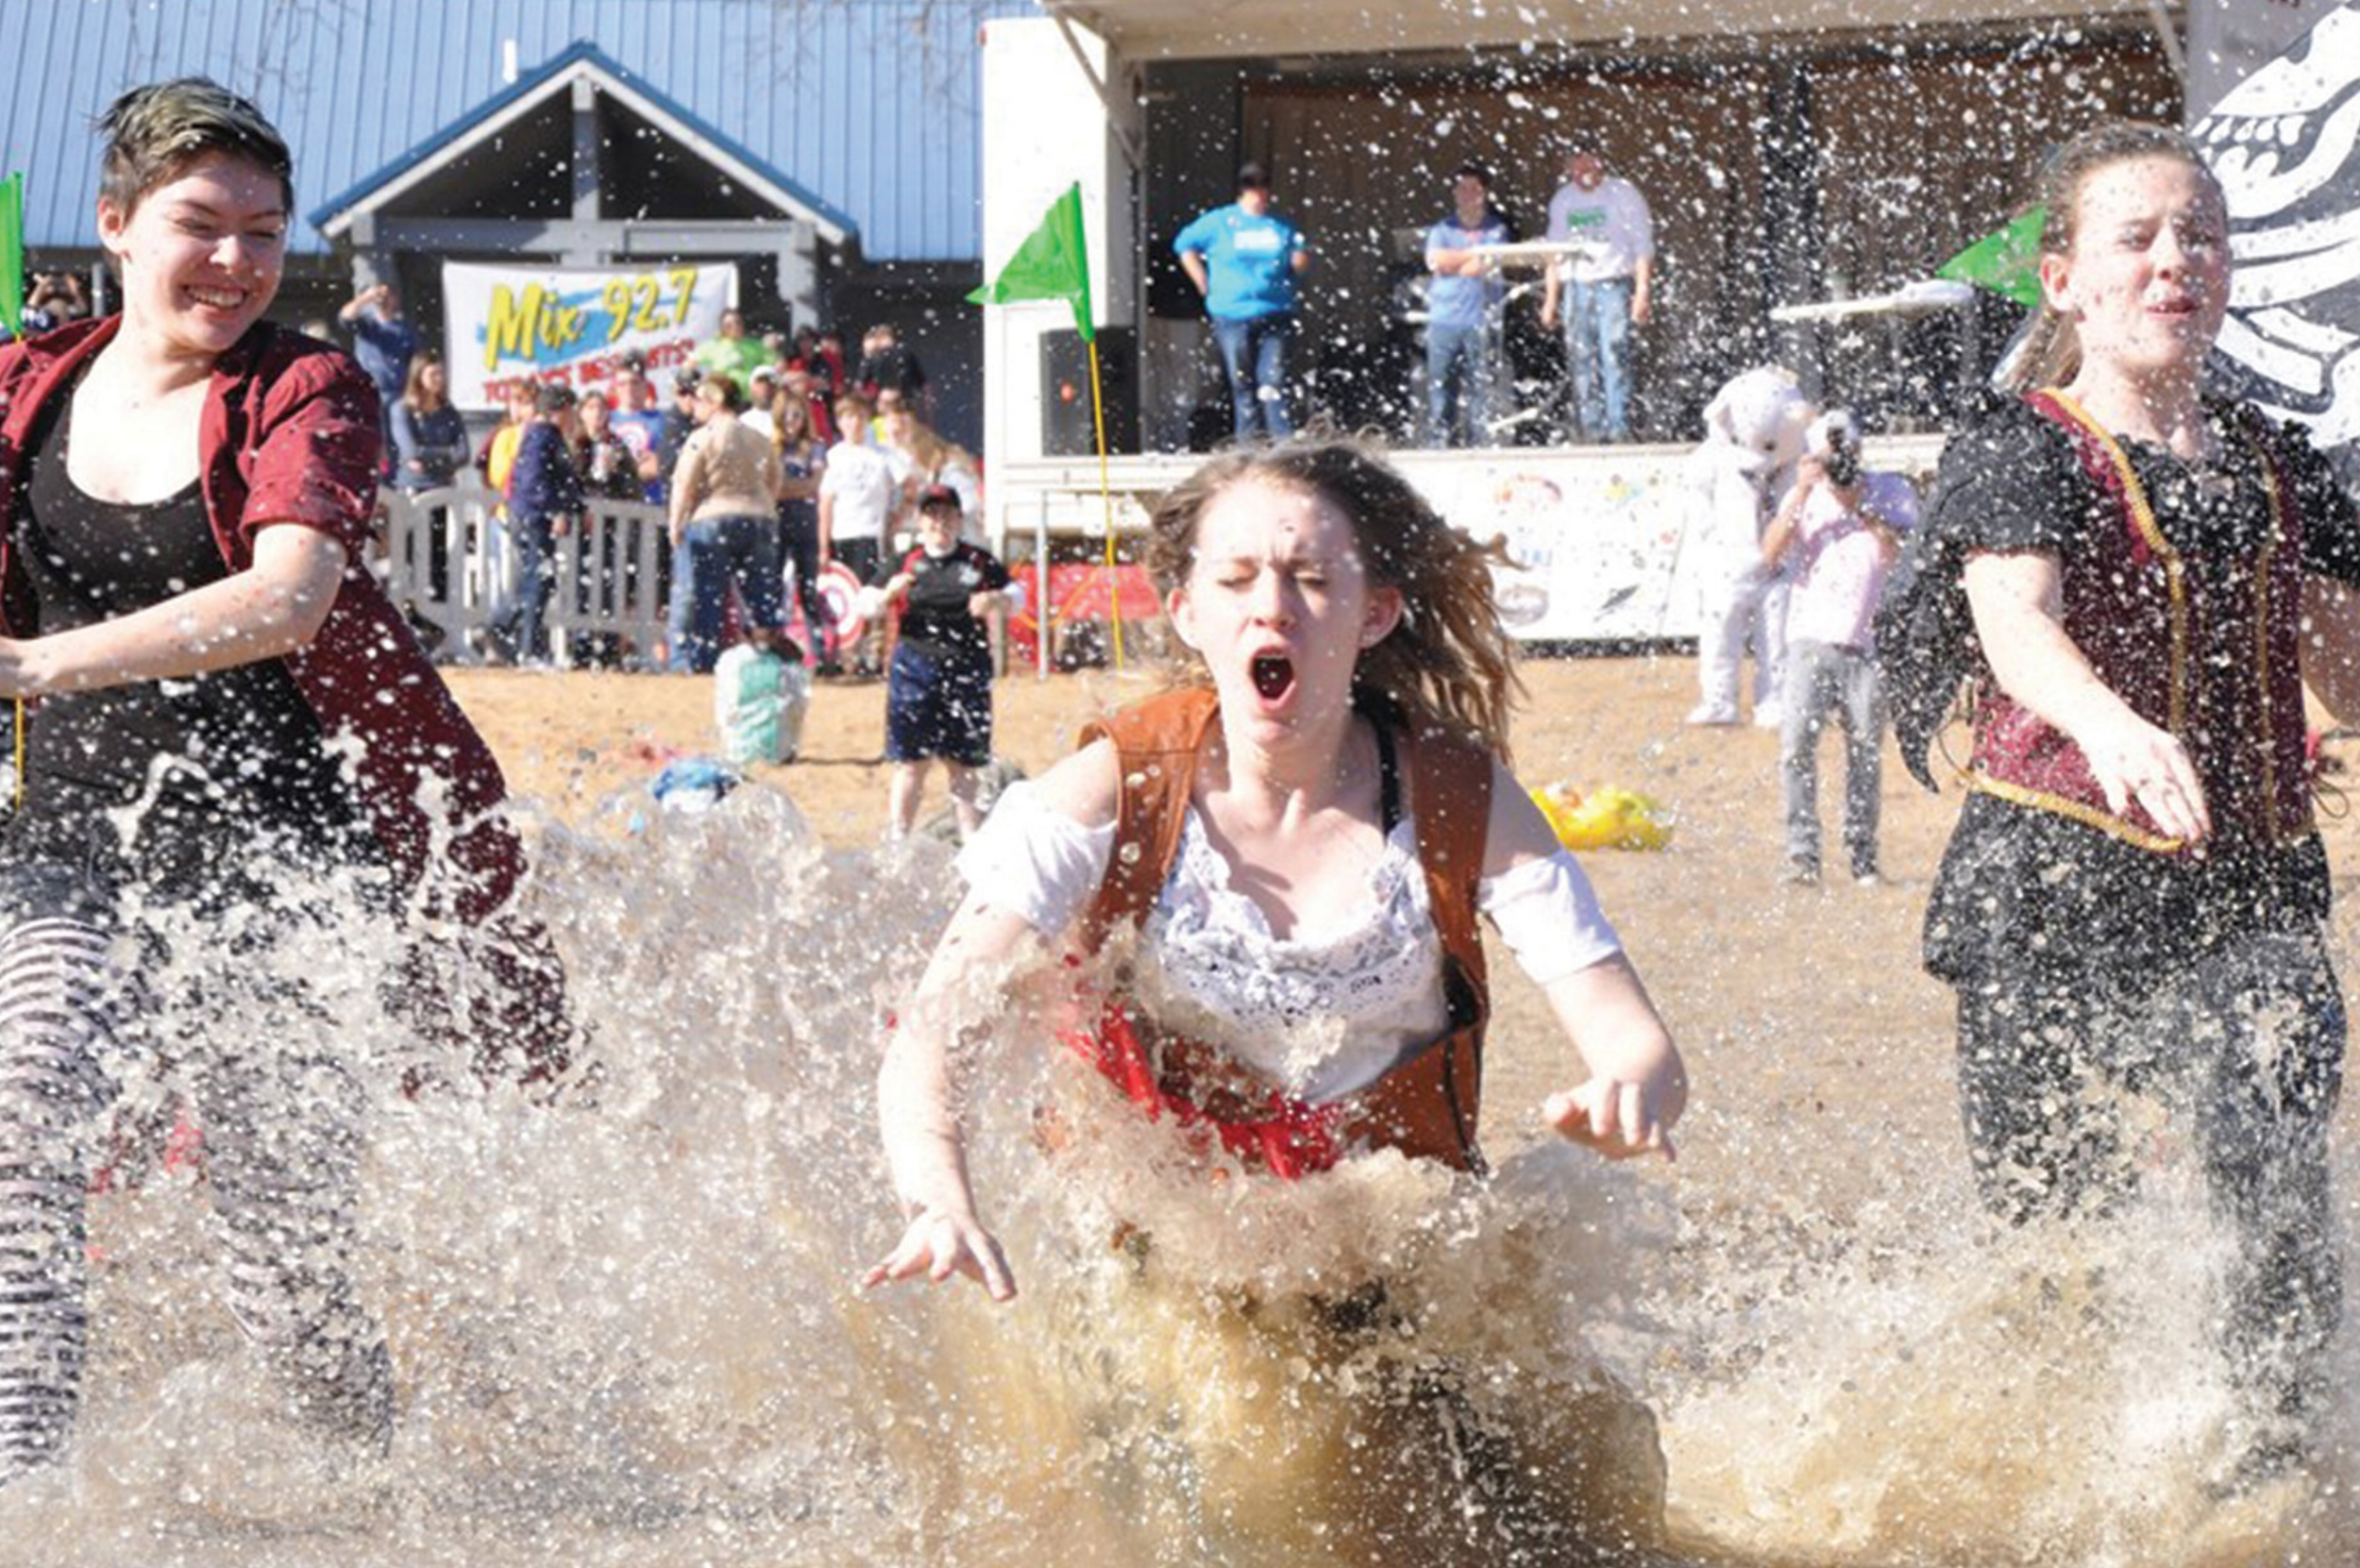 Taking a chilly dip at the Osage Beach Polar Plunge